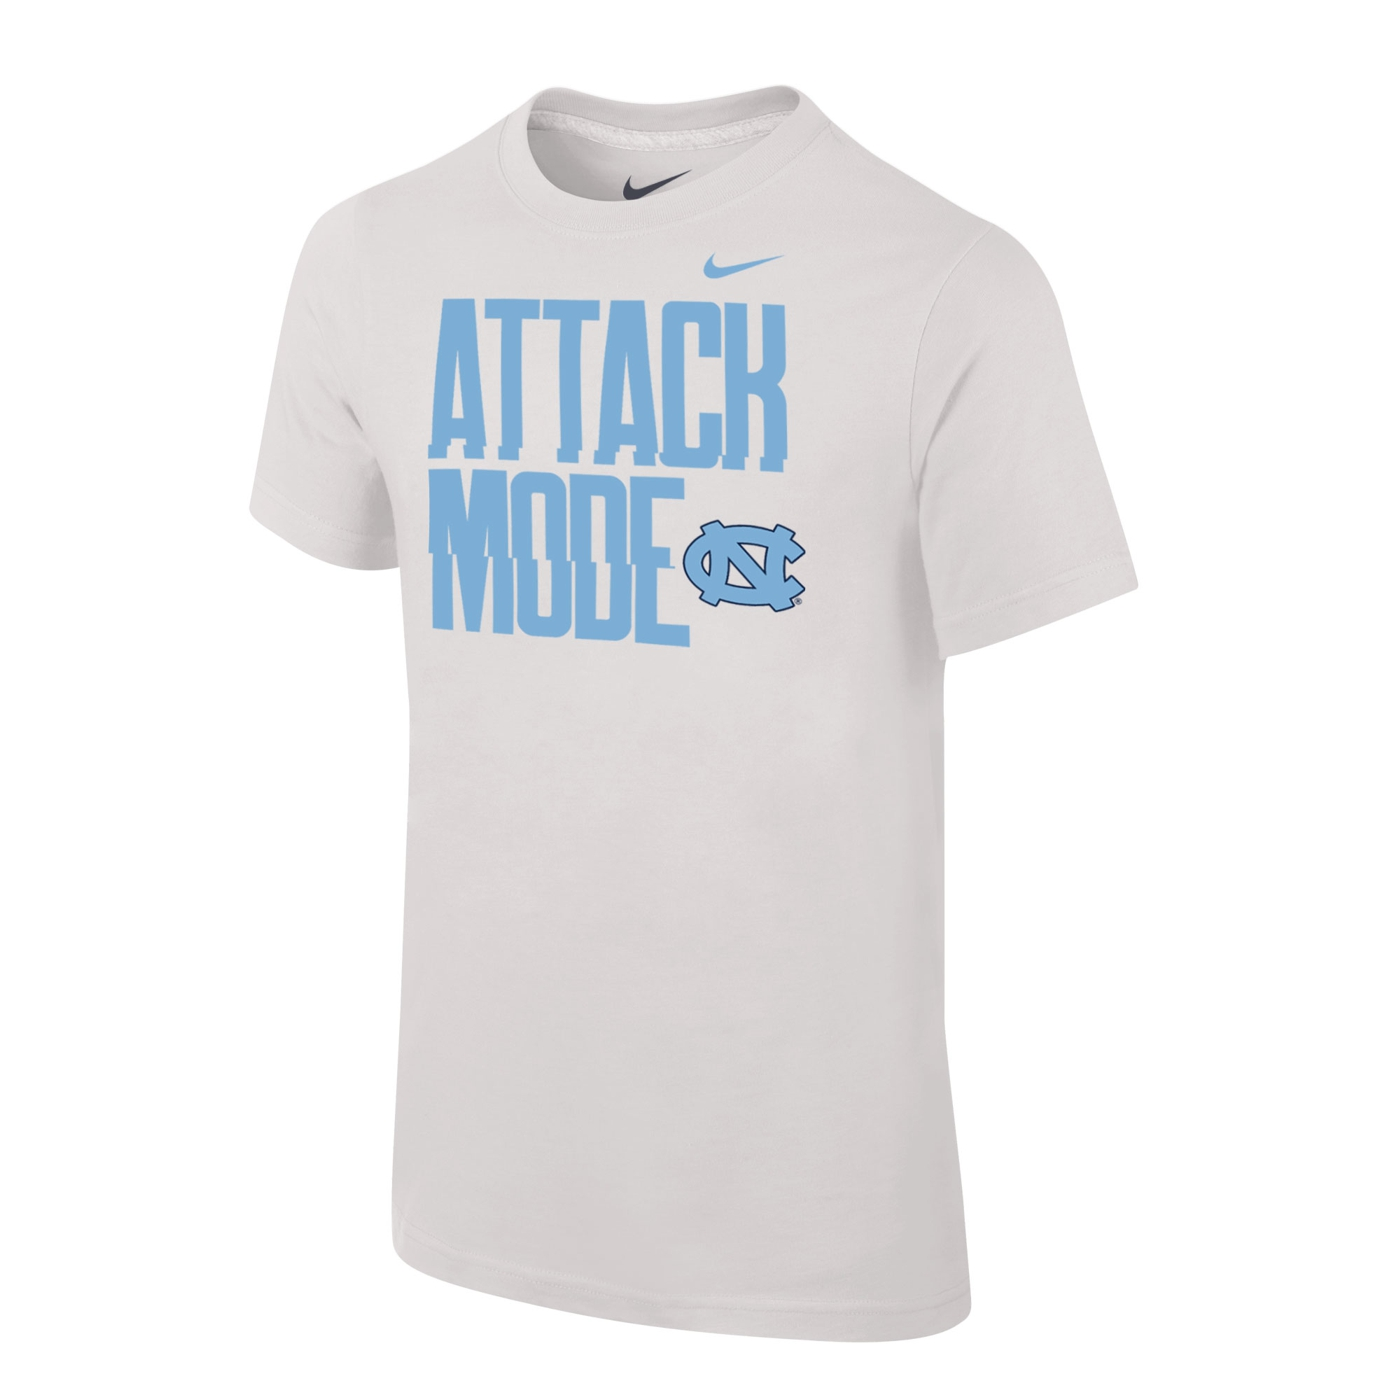 b0f05c4ae48 Johnny T-shirt - North Carolina Tar Heels - THE Source for UNC Merchandise